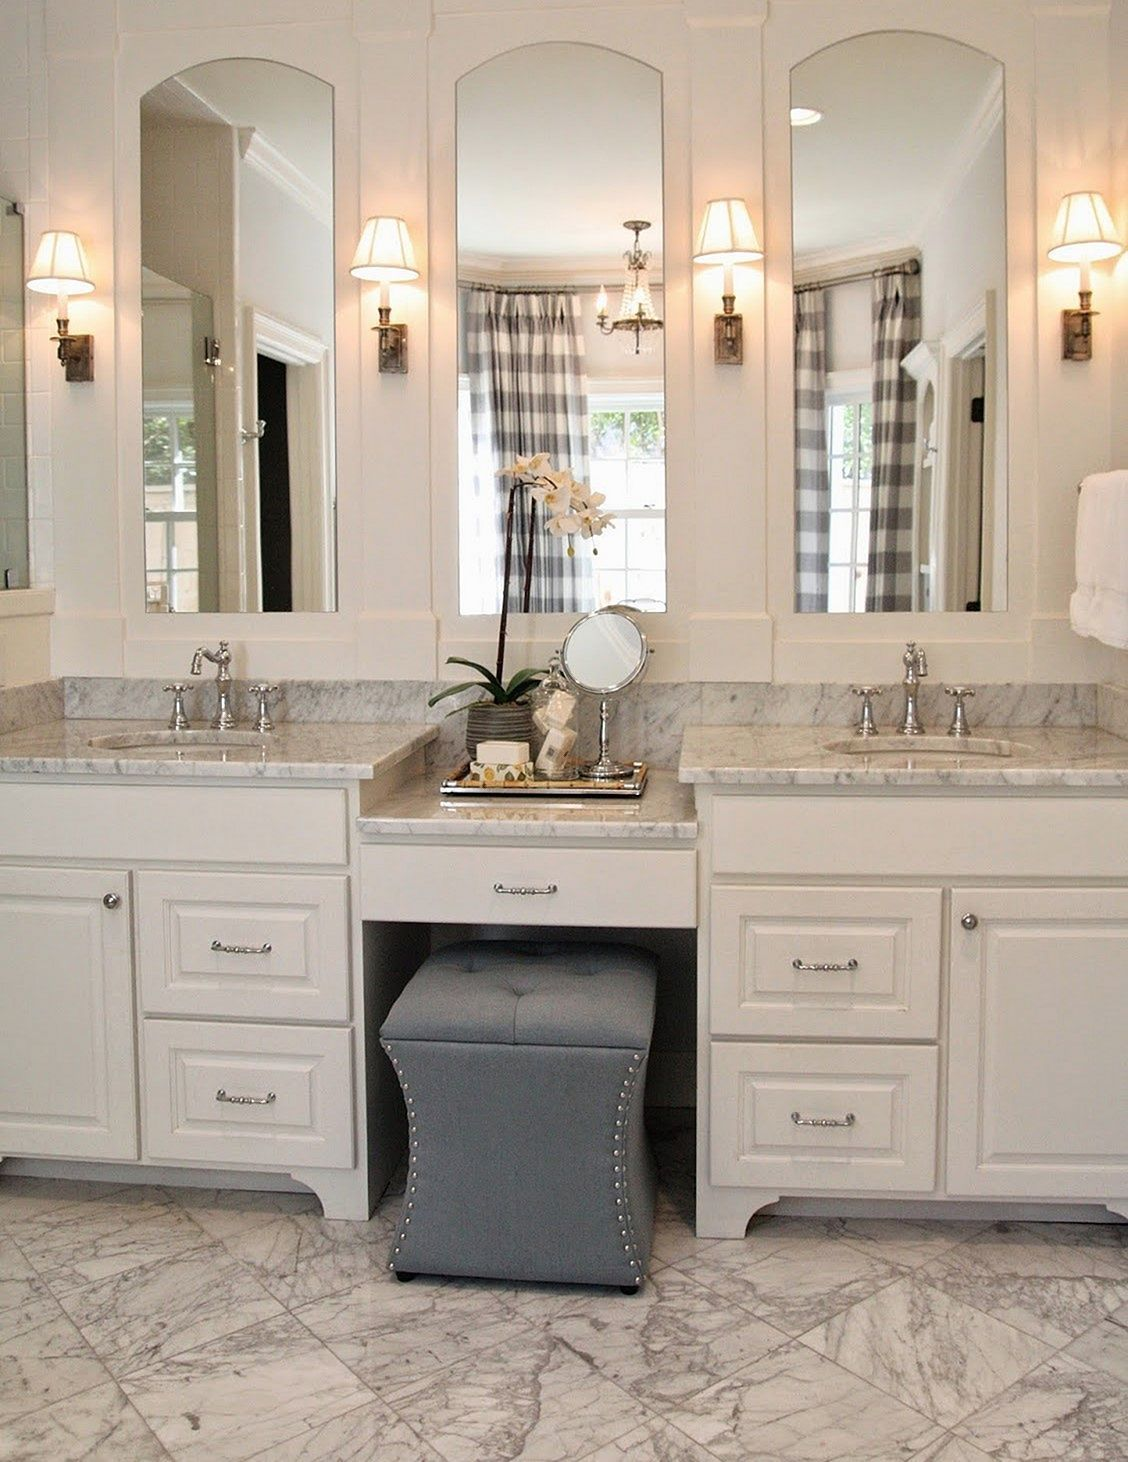 Photo of The Best Diy Master Bathroom Ideas Remodel On A Budget No 68 — Design & Decorating